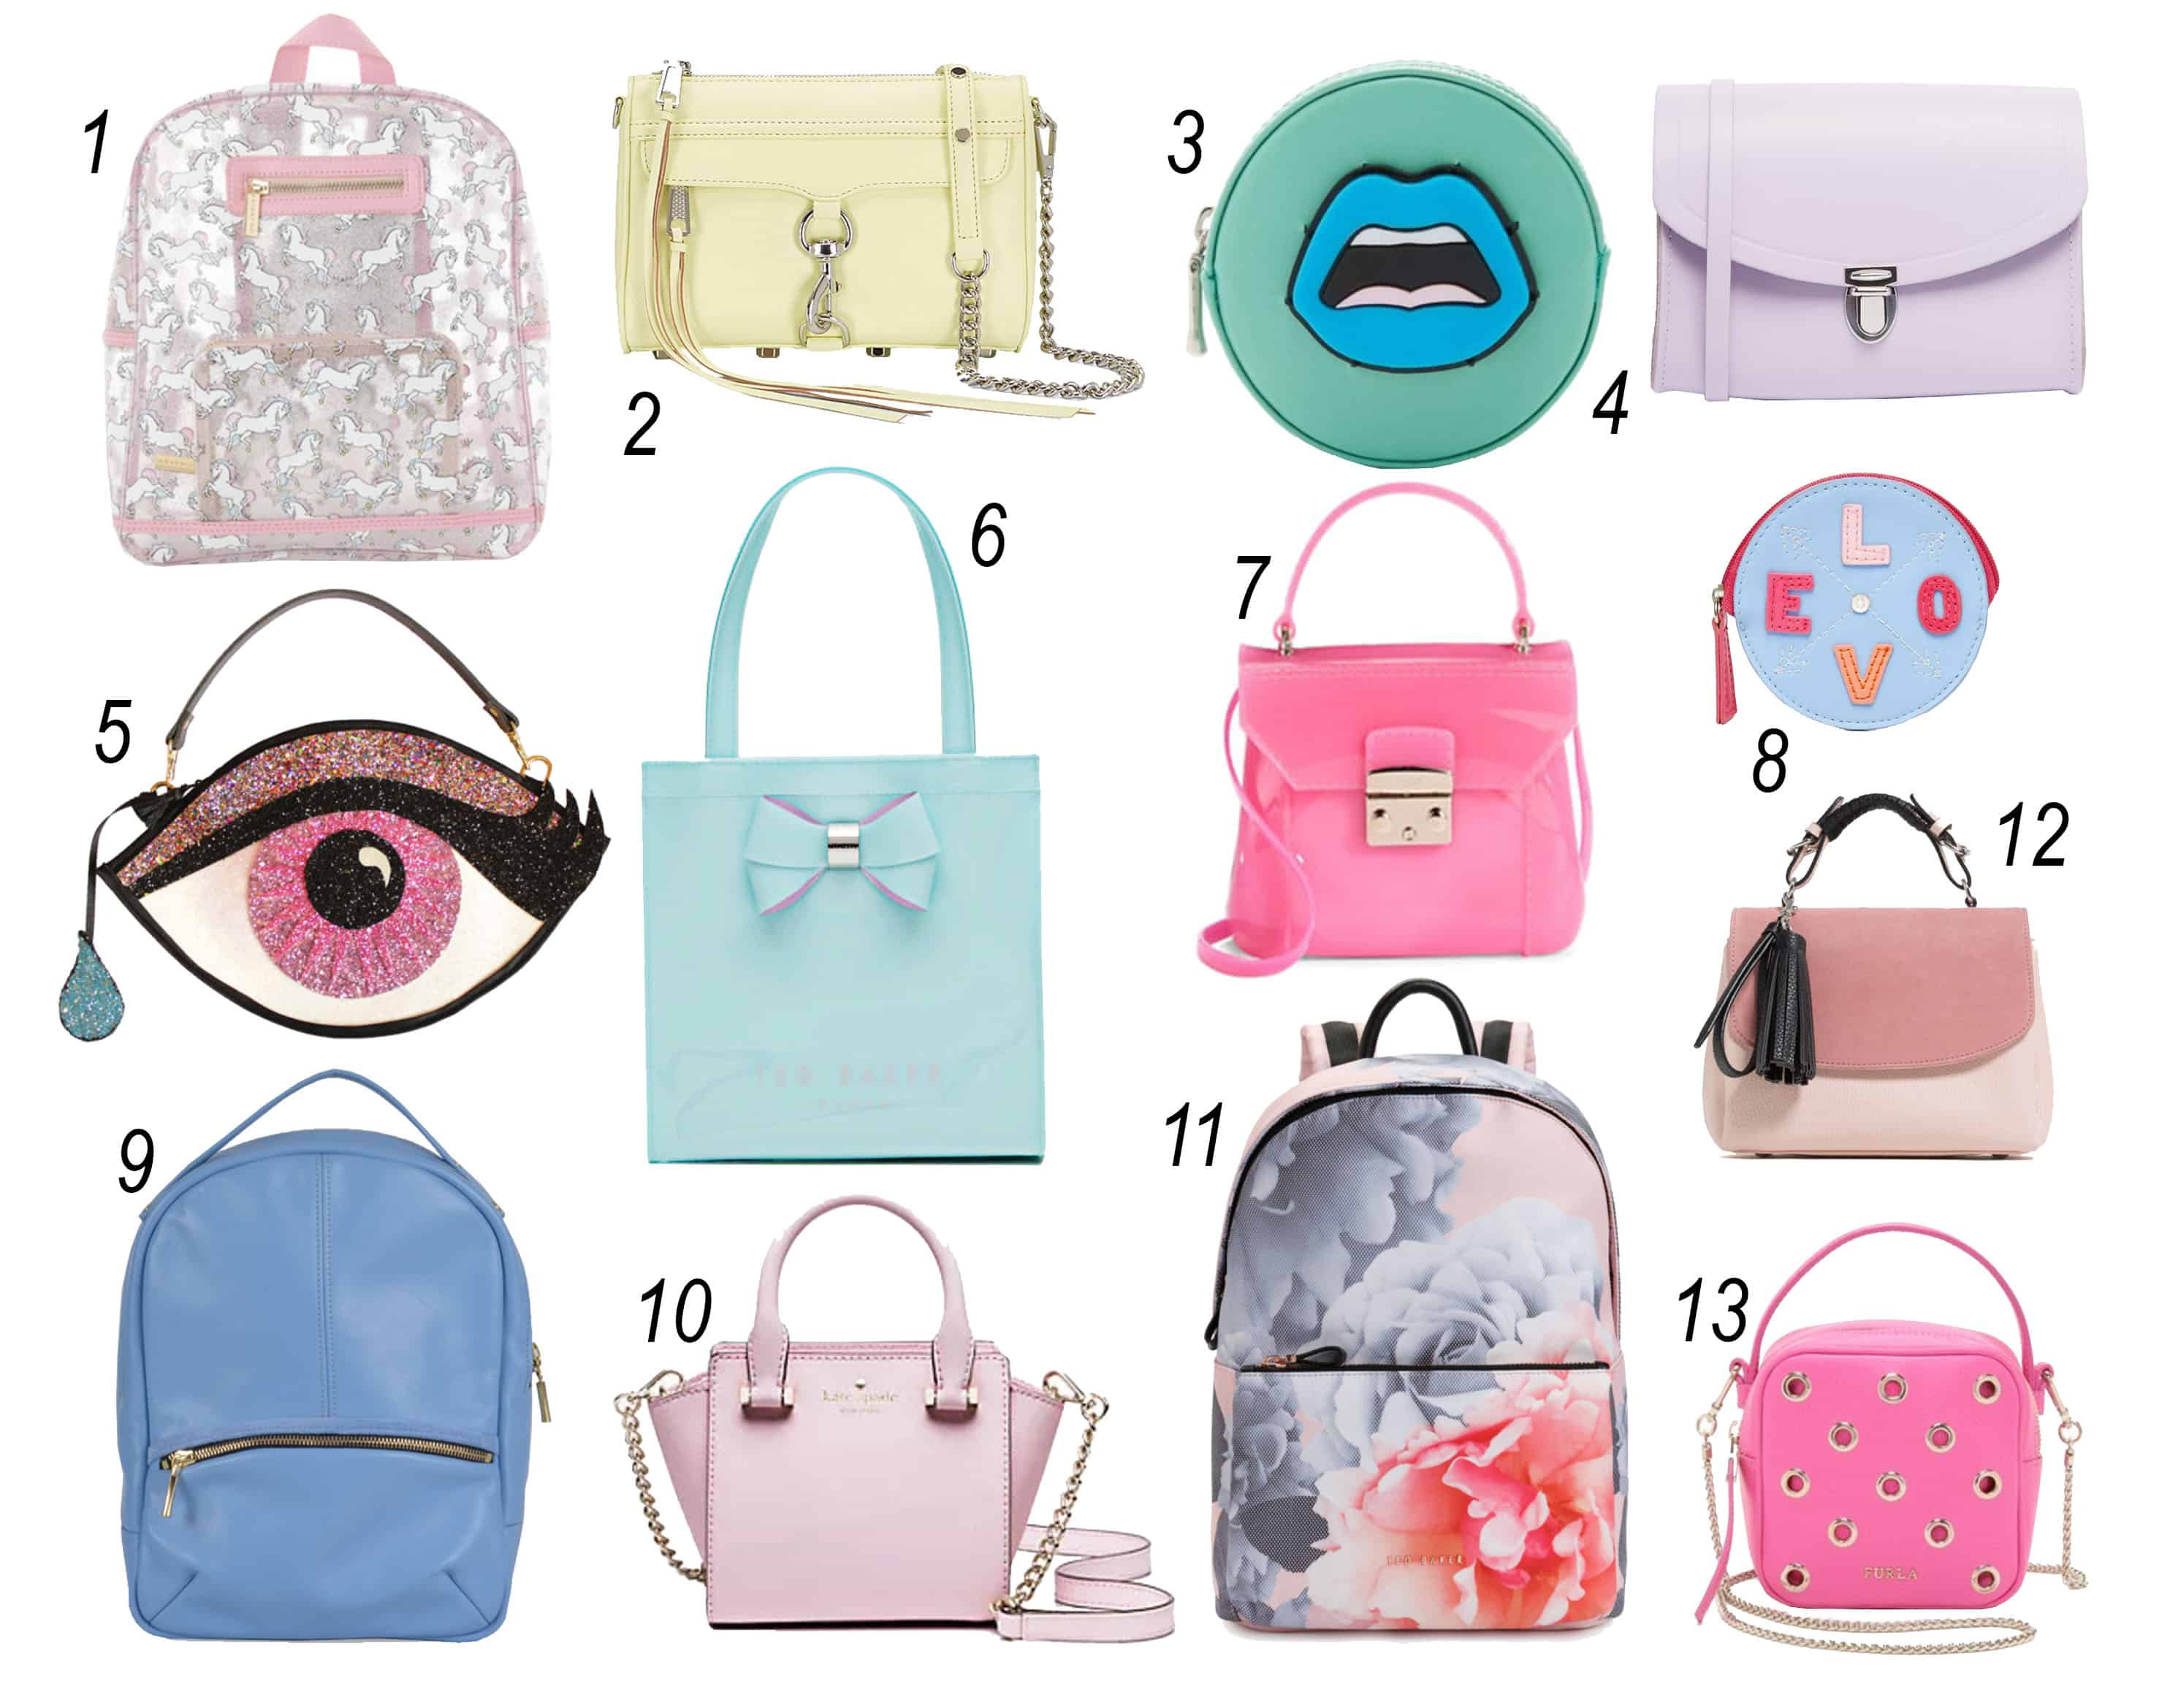 797f90e7ff1075 From Ted Baker to Rebecca Minkoff  13 colourful bags we LOVE ...